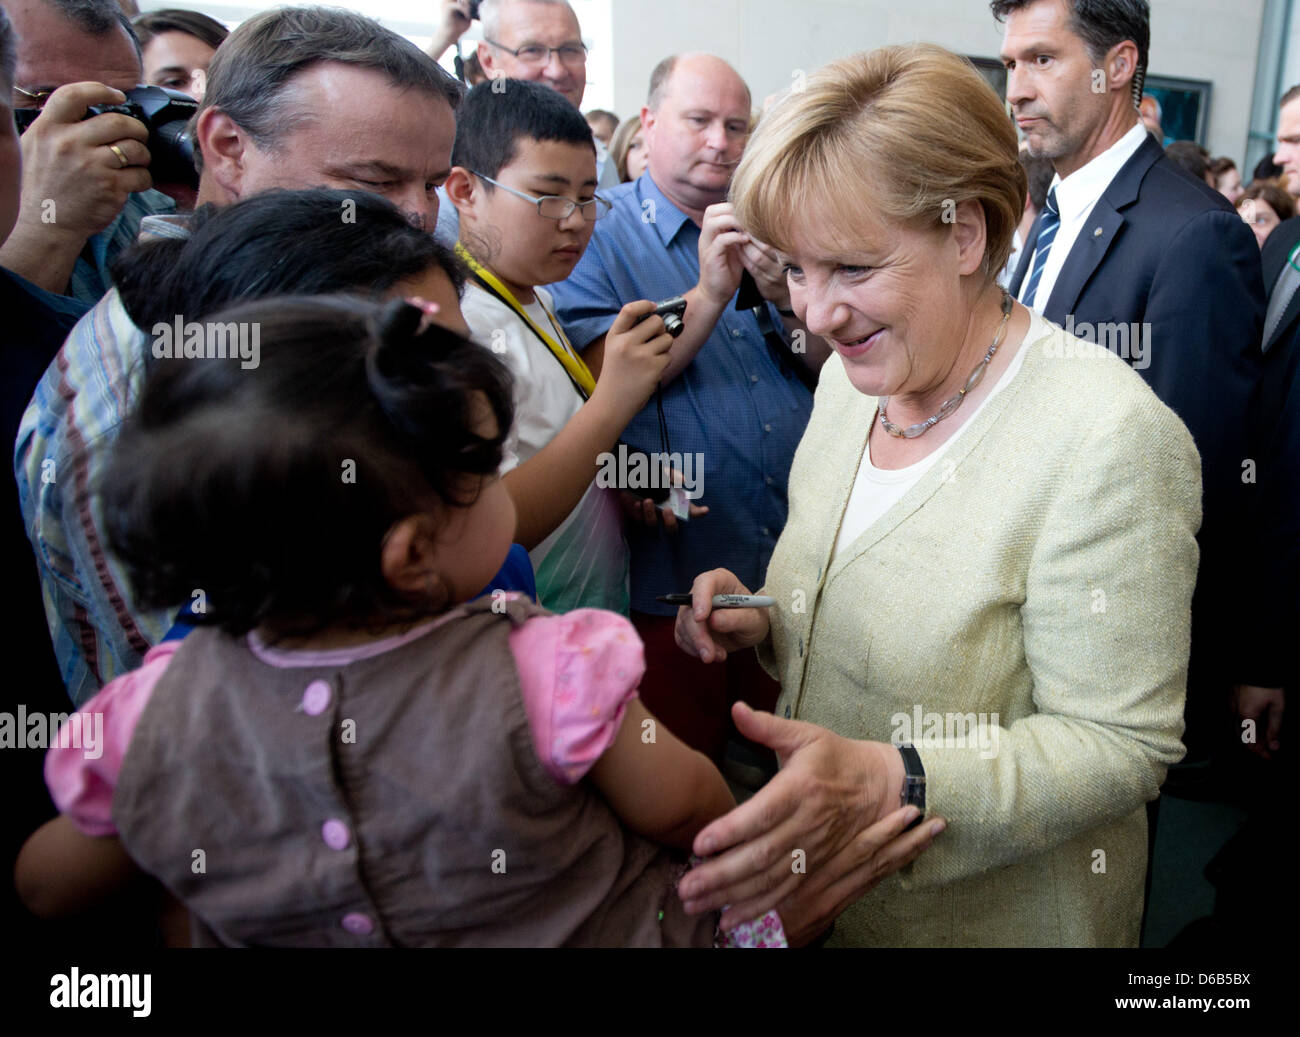 German Chancellor Angela Merkel signs autographs and talks to visitors at the Federal Chancellery in Berlin, Germany, Stock Photo